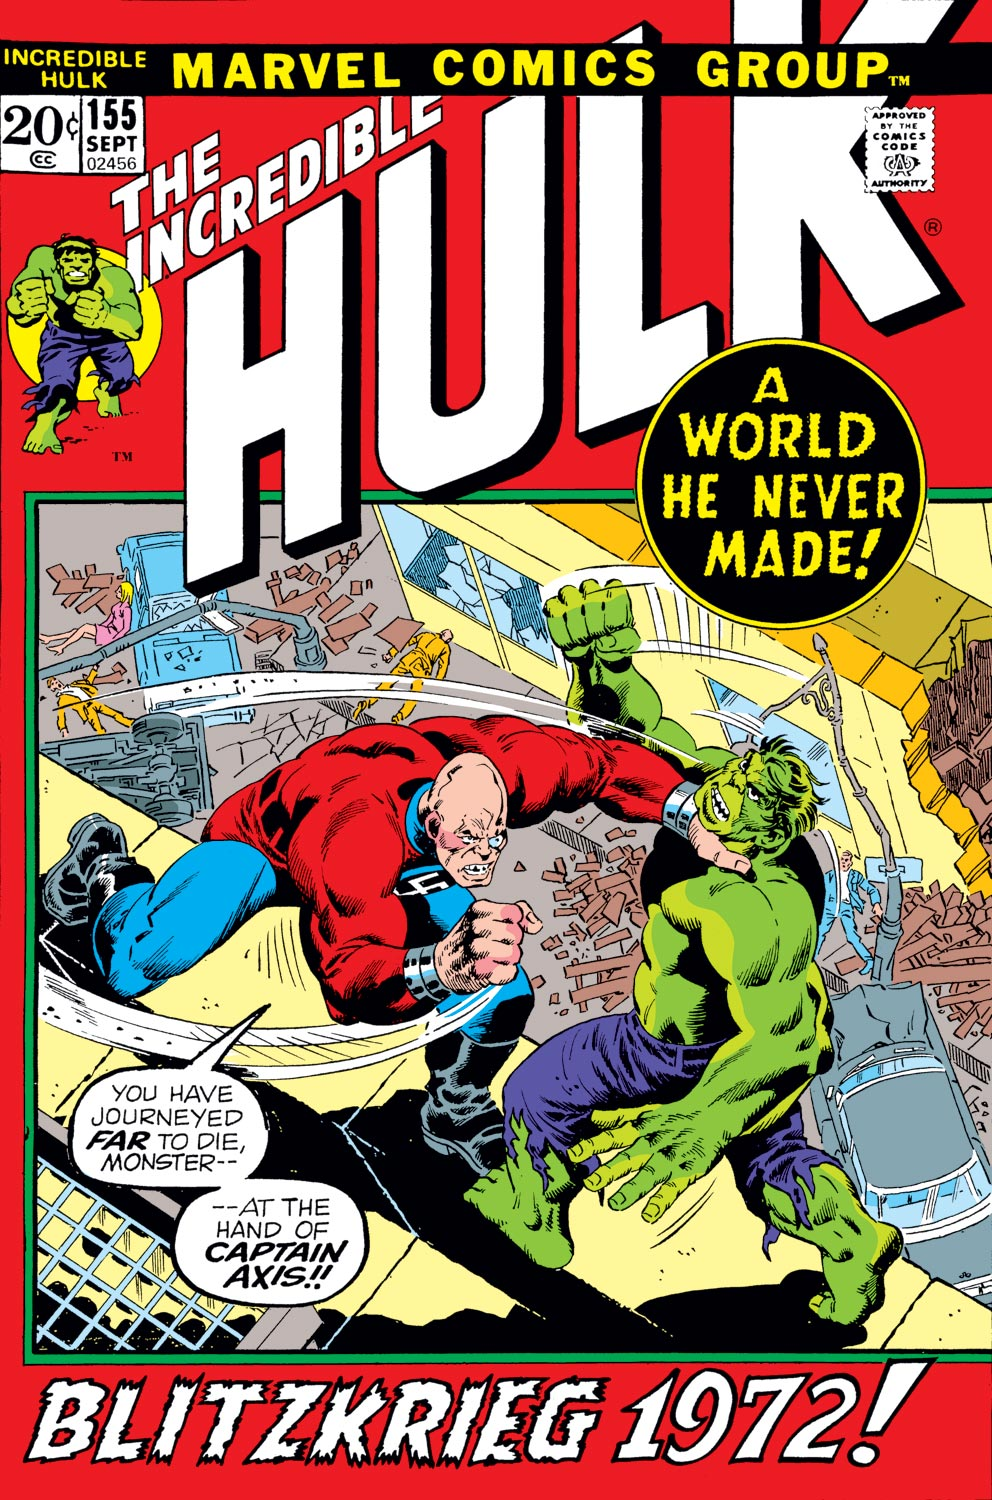 Incredible Hulk (1962) #155